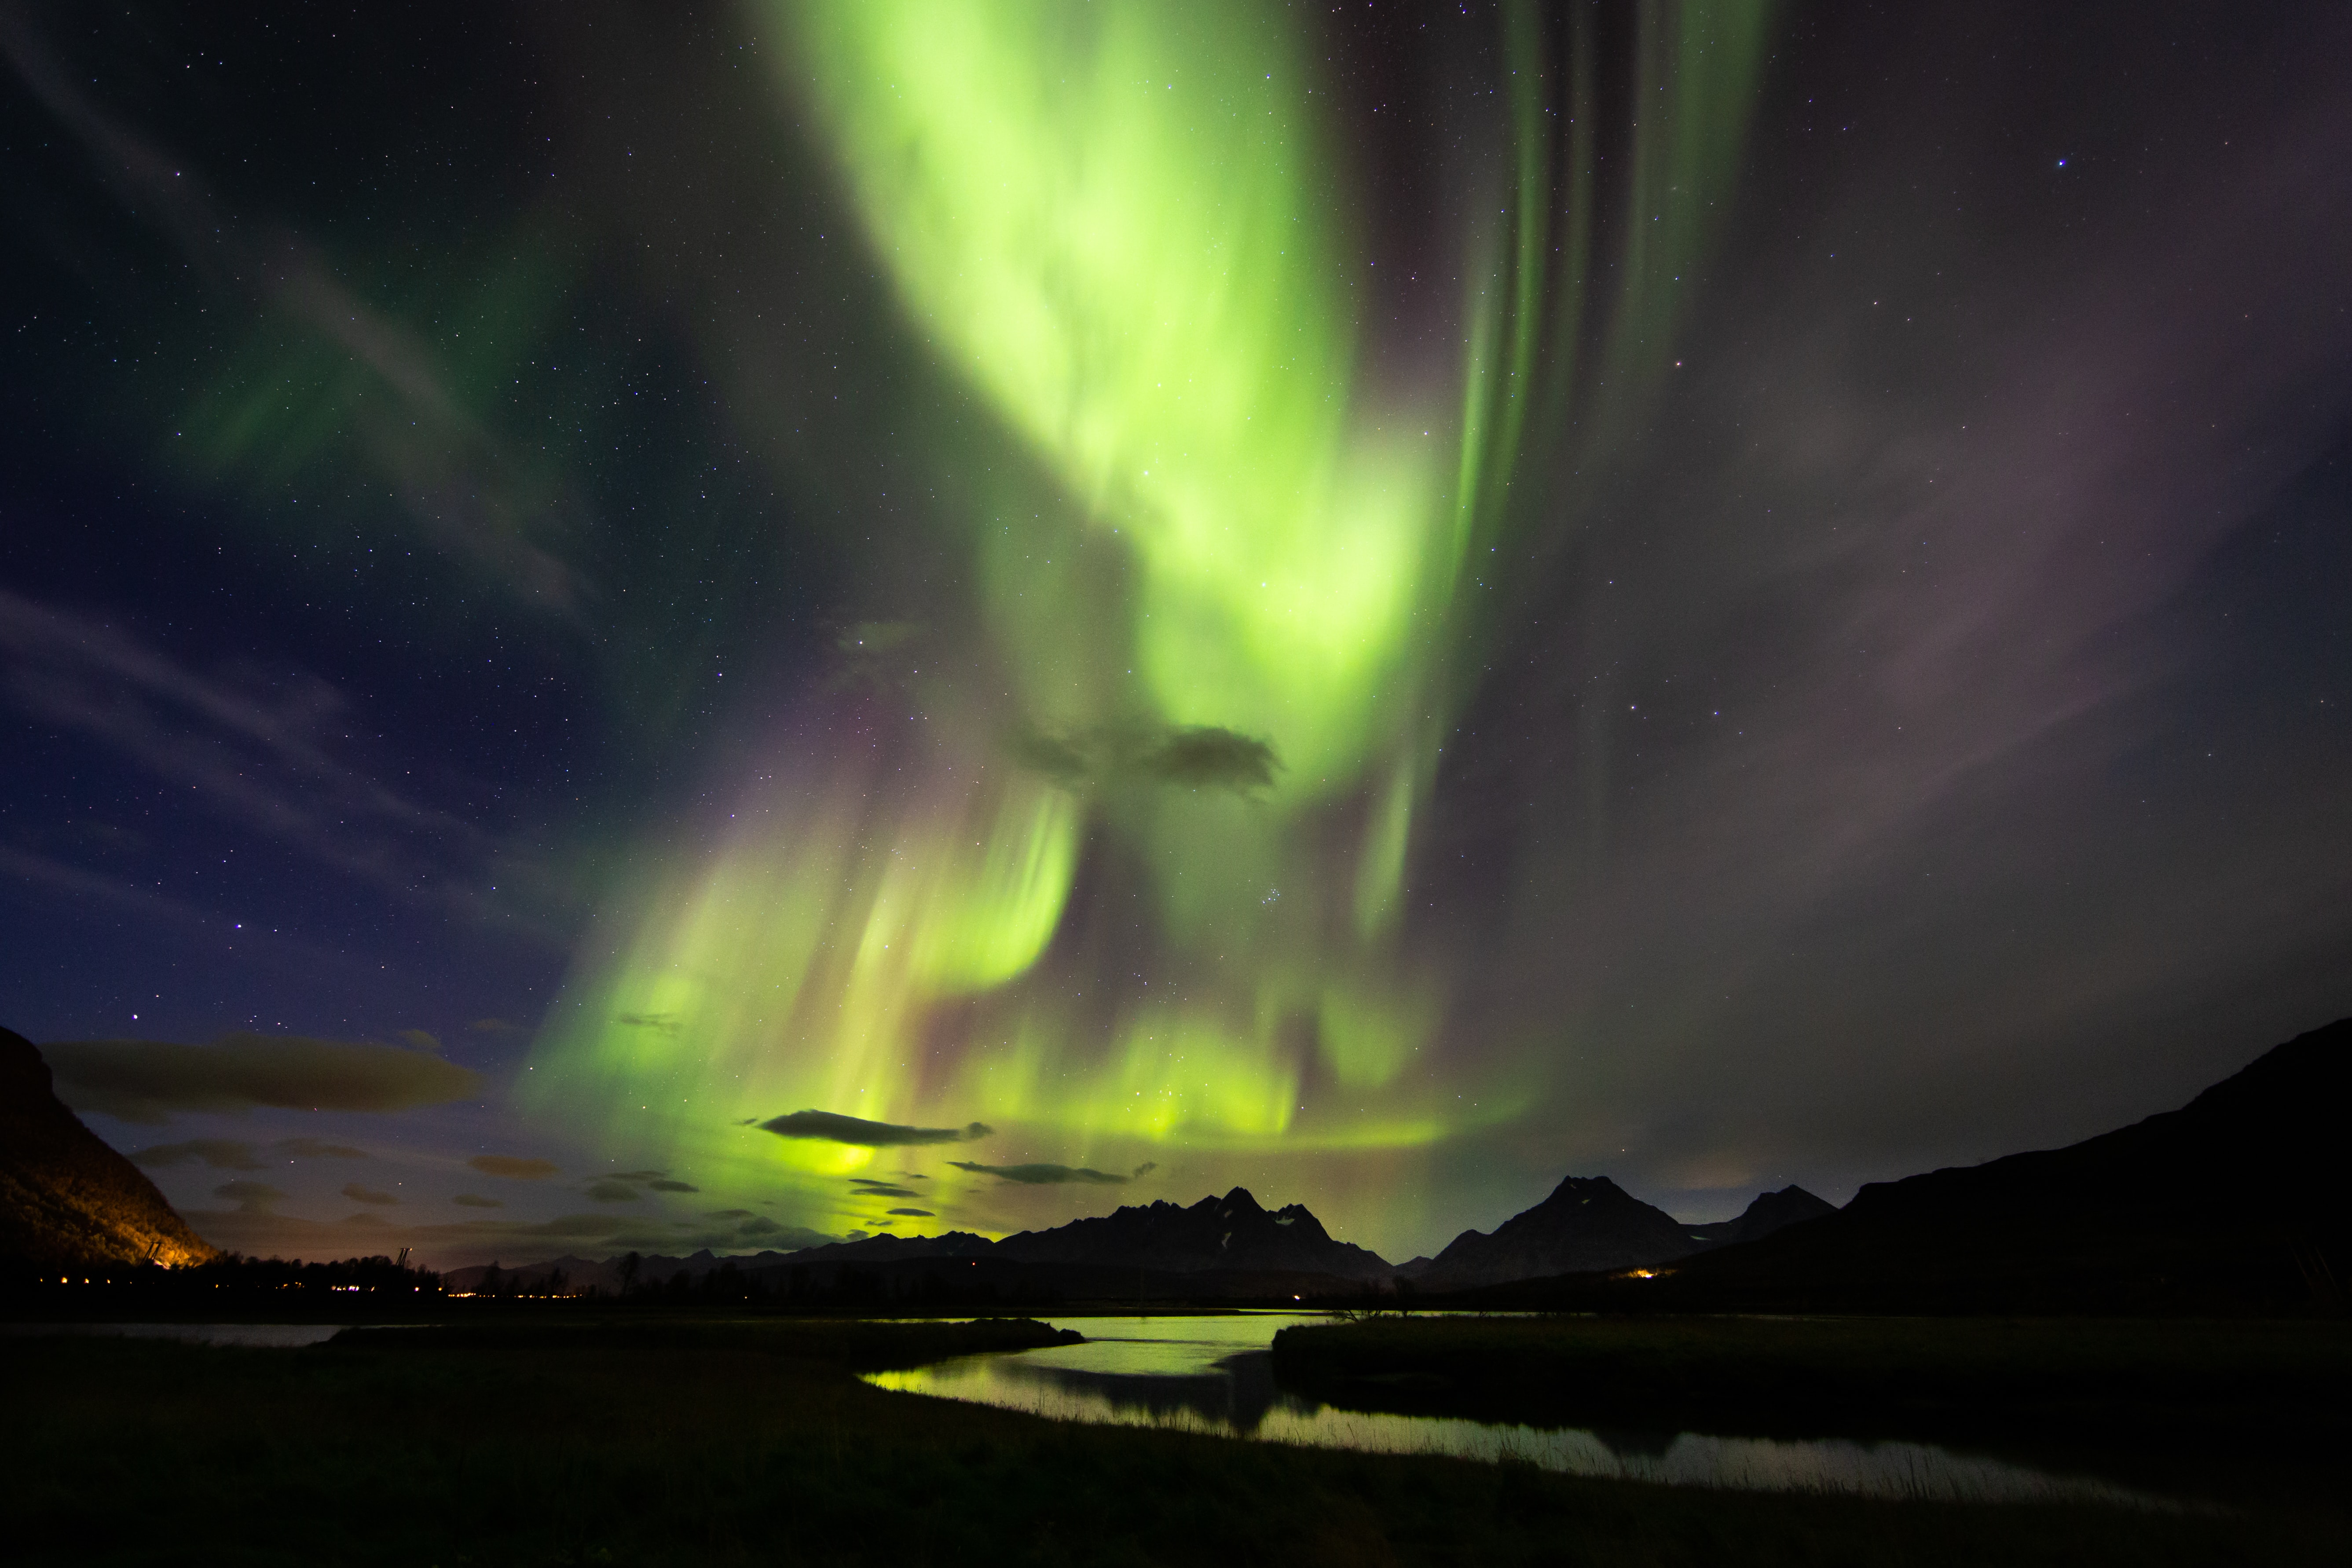 Aurora over body of water and mountain